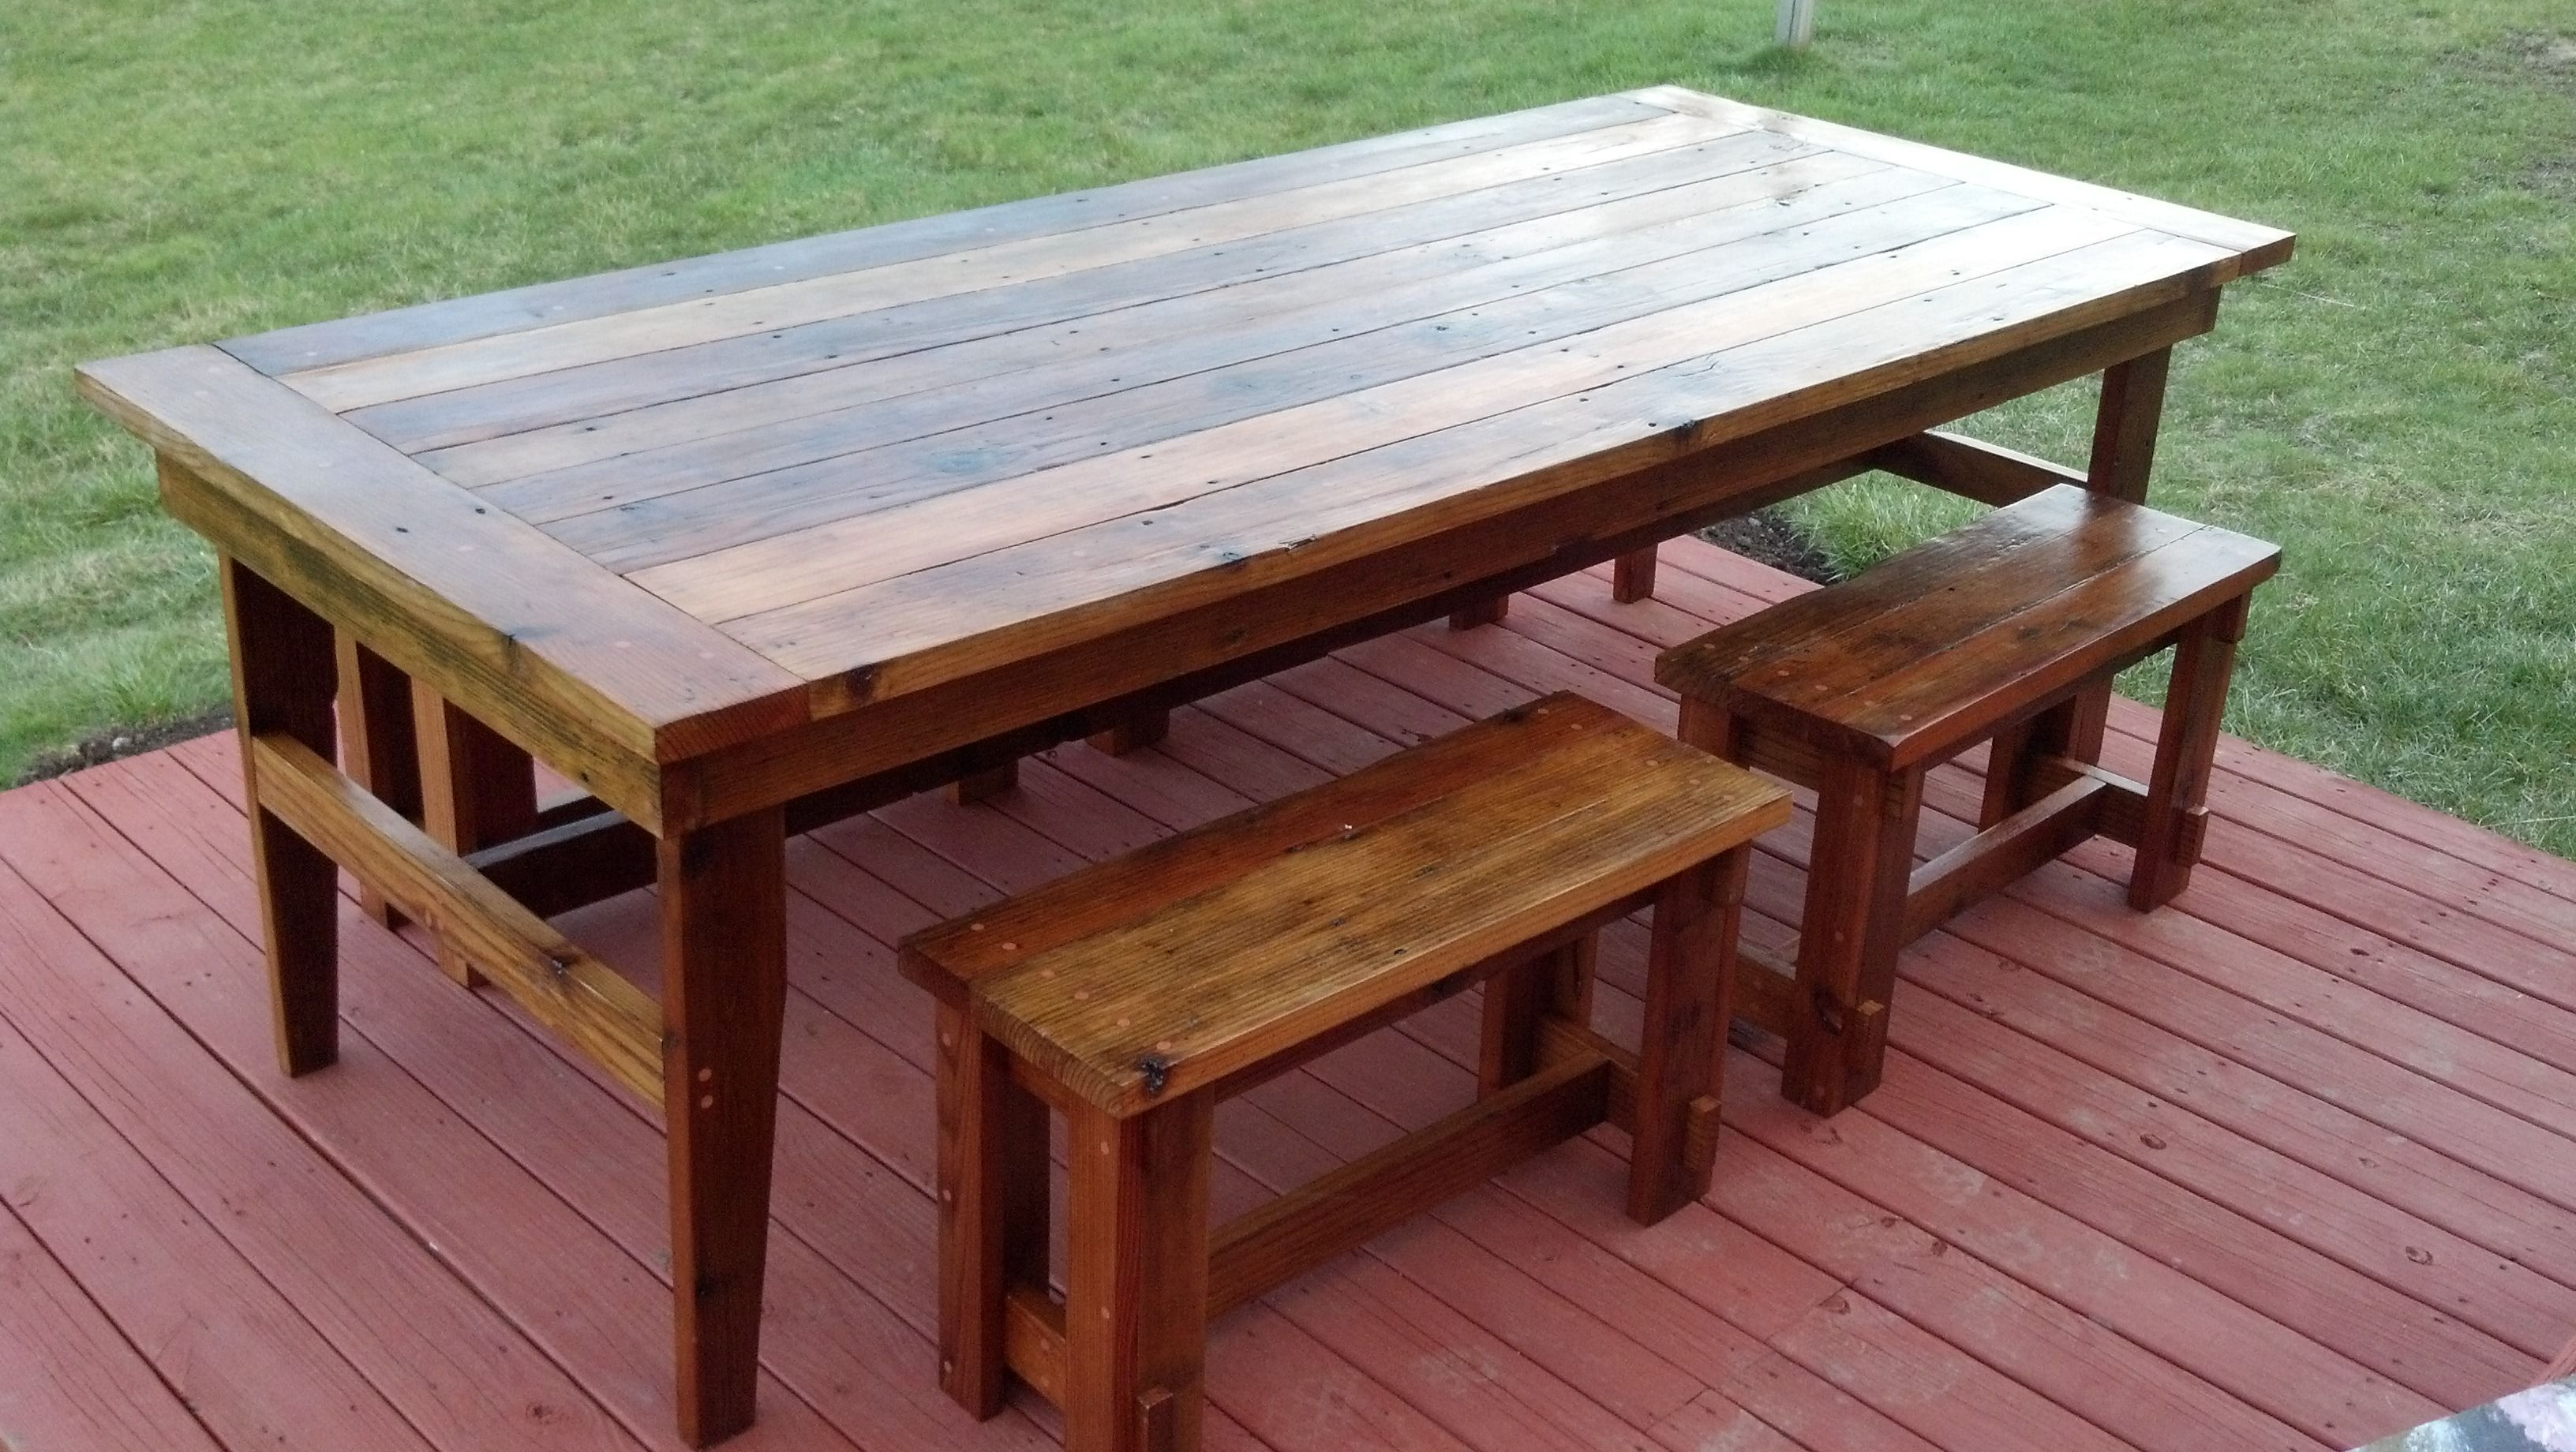 rustic farm table benches plans at home decor tips rh pinterest com